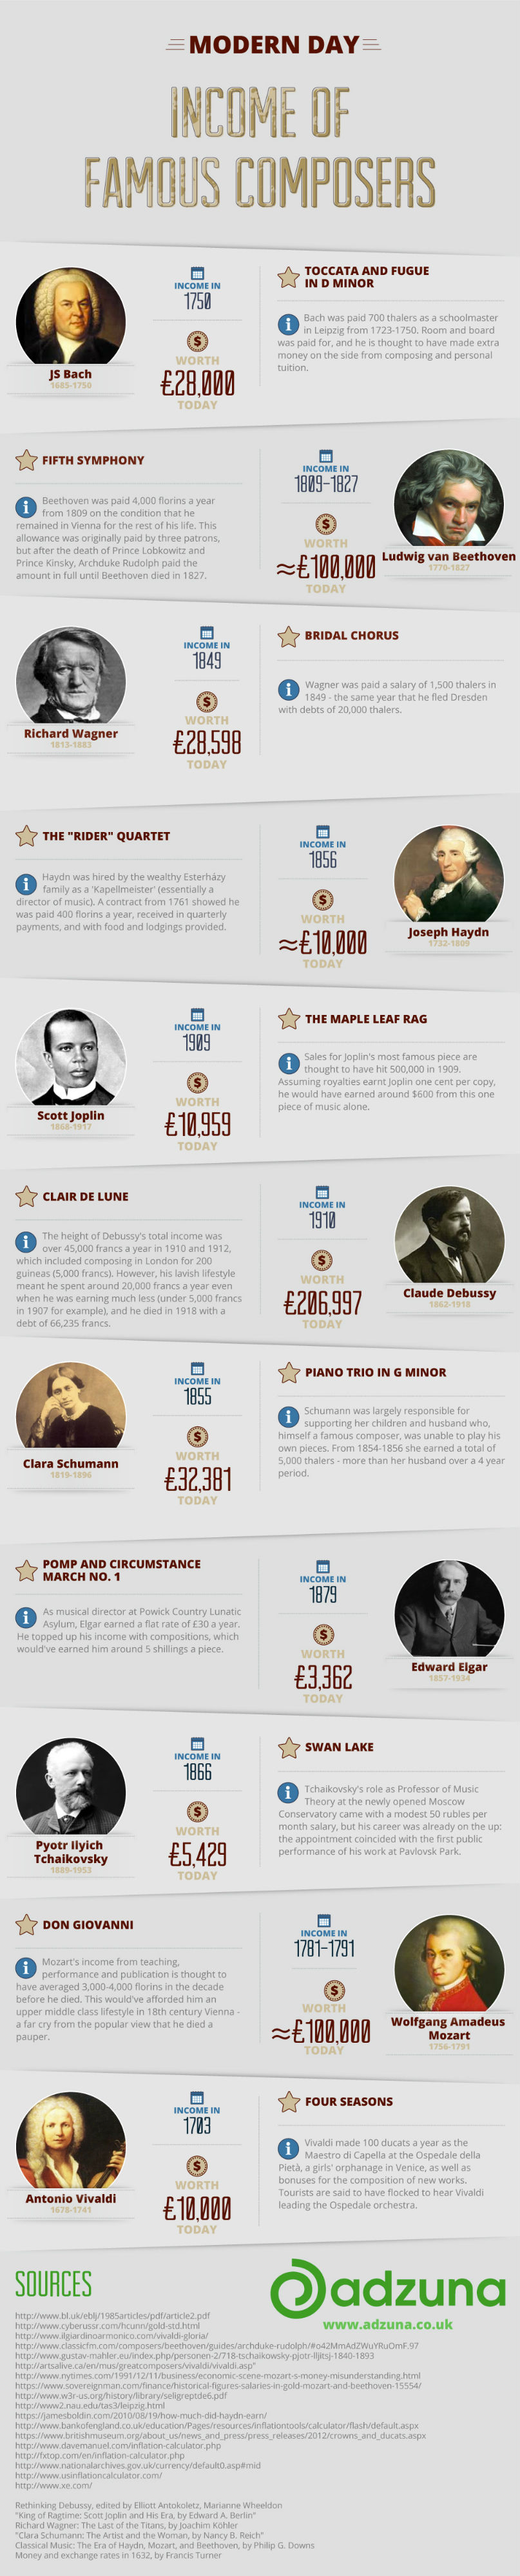 Composers salaries